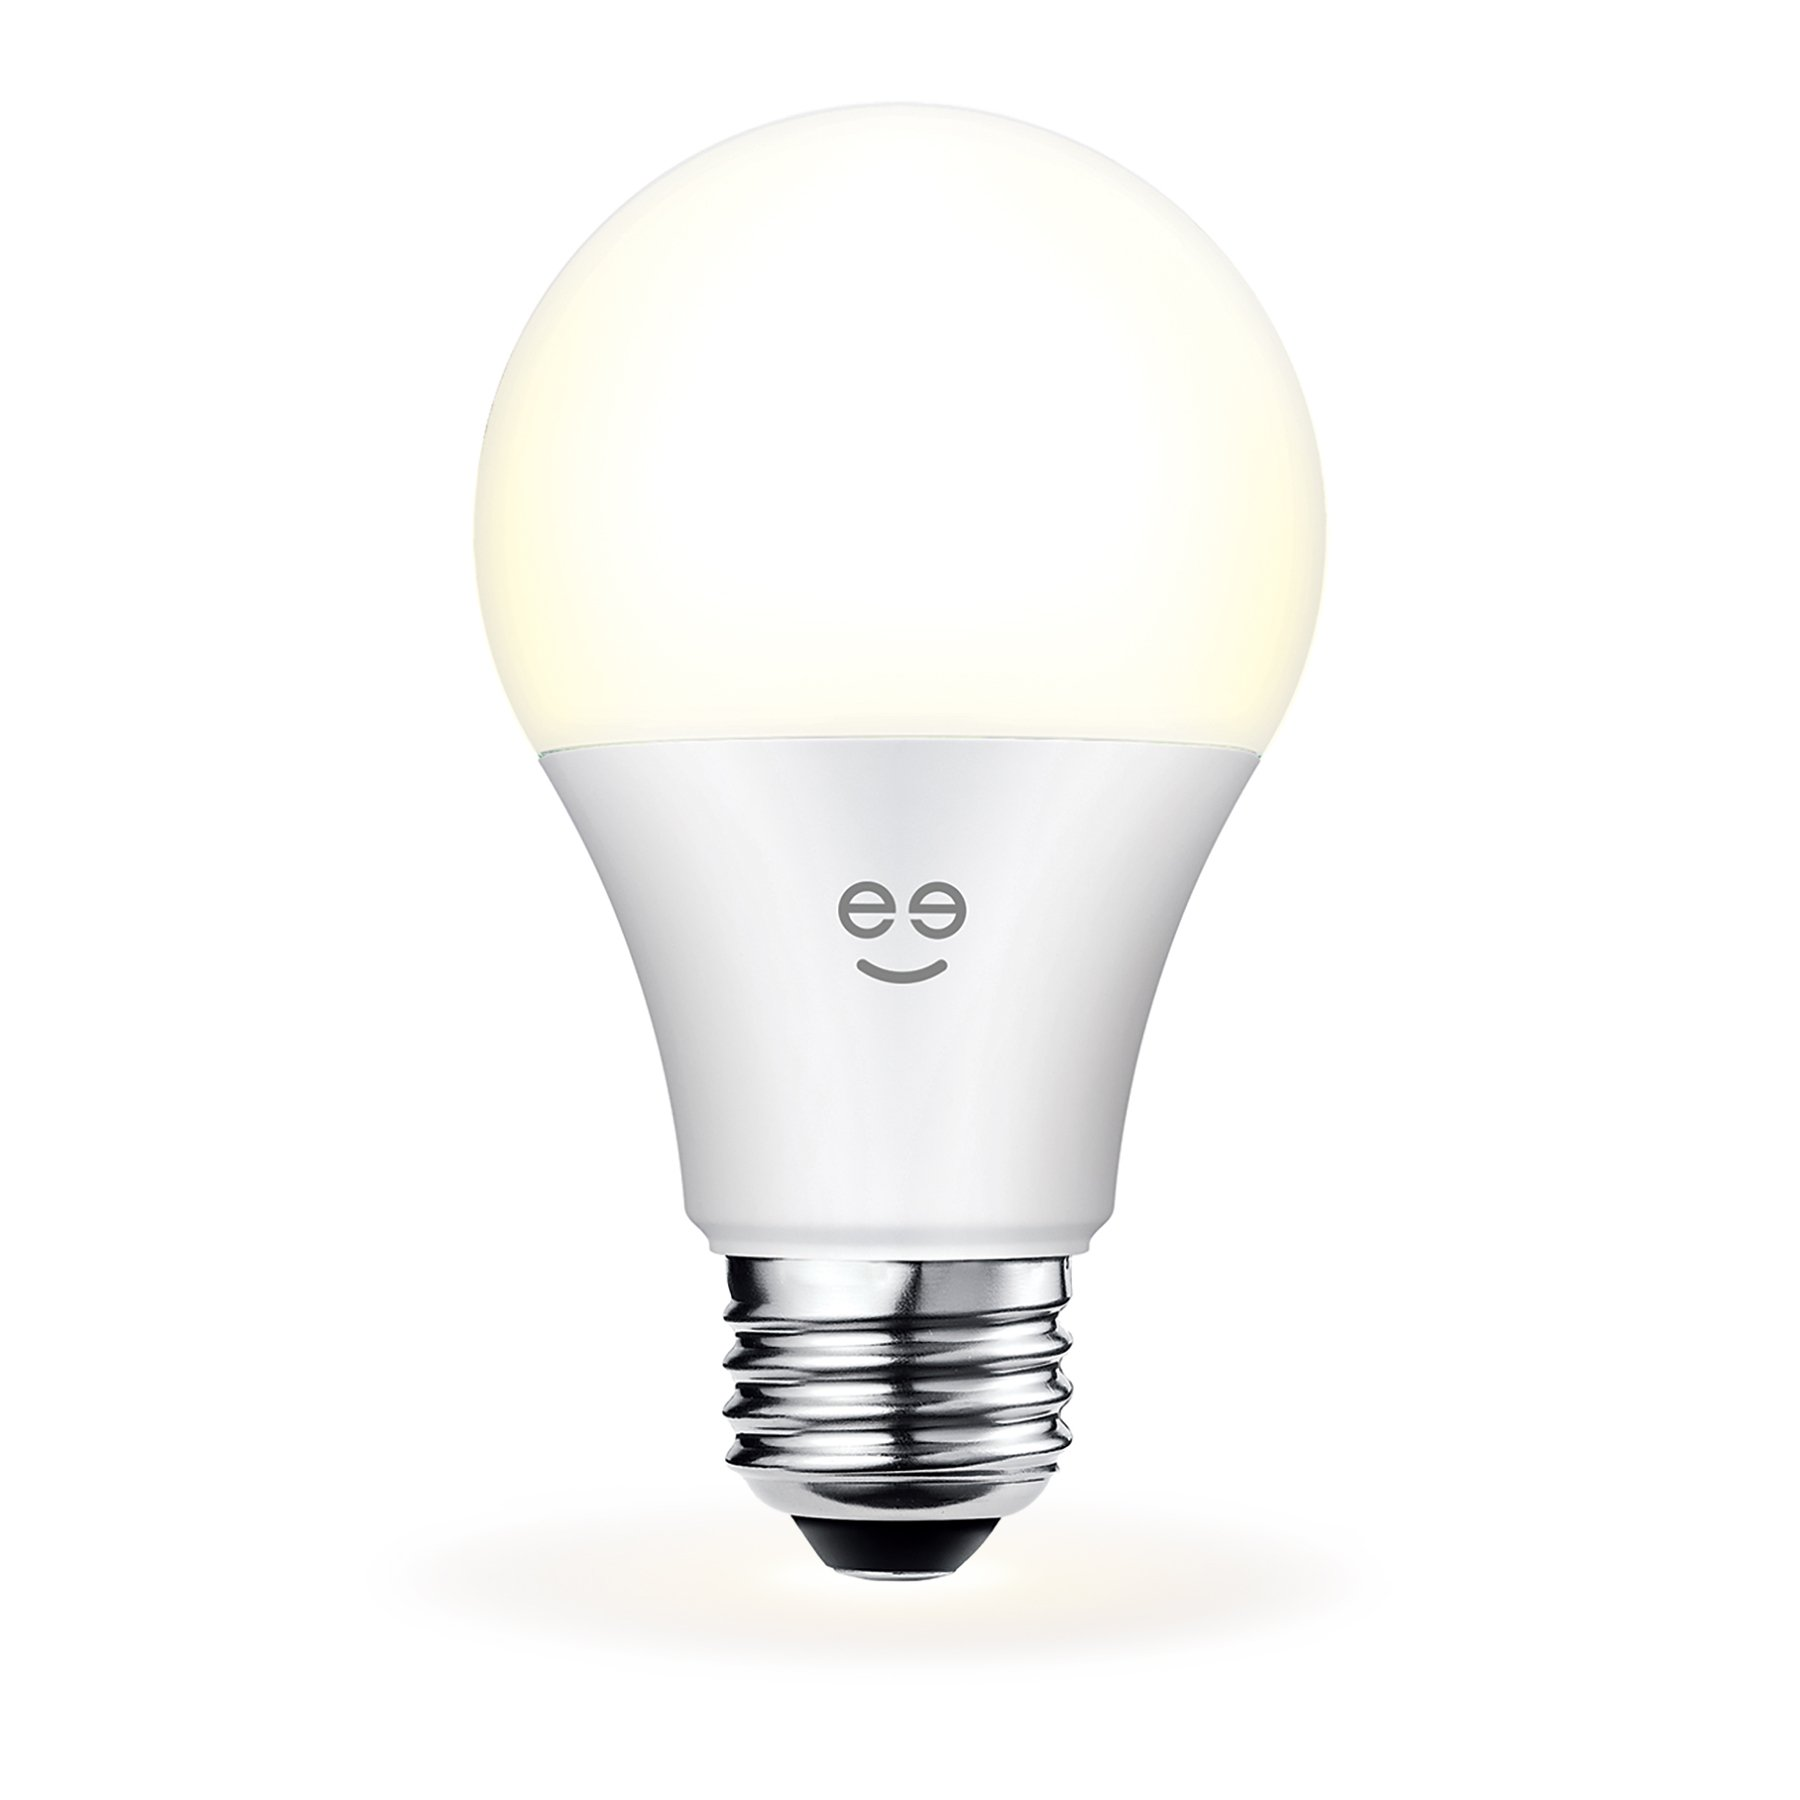 Geeni Lux 800 A19 Smart Wi-Fi LED Dimmable White Light Bulb - 60W Equivalent, No Hub Required, Works with Alexa, Google Assistant & Microsoft Cortana by Geeni (Image #1)